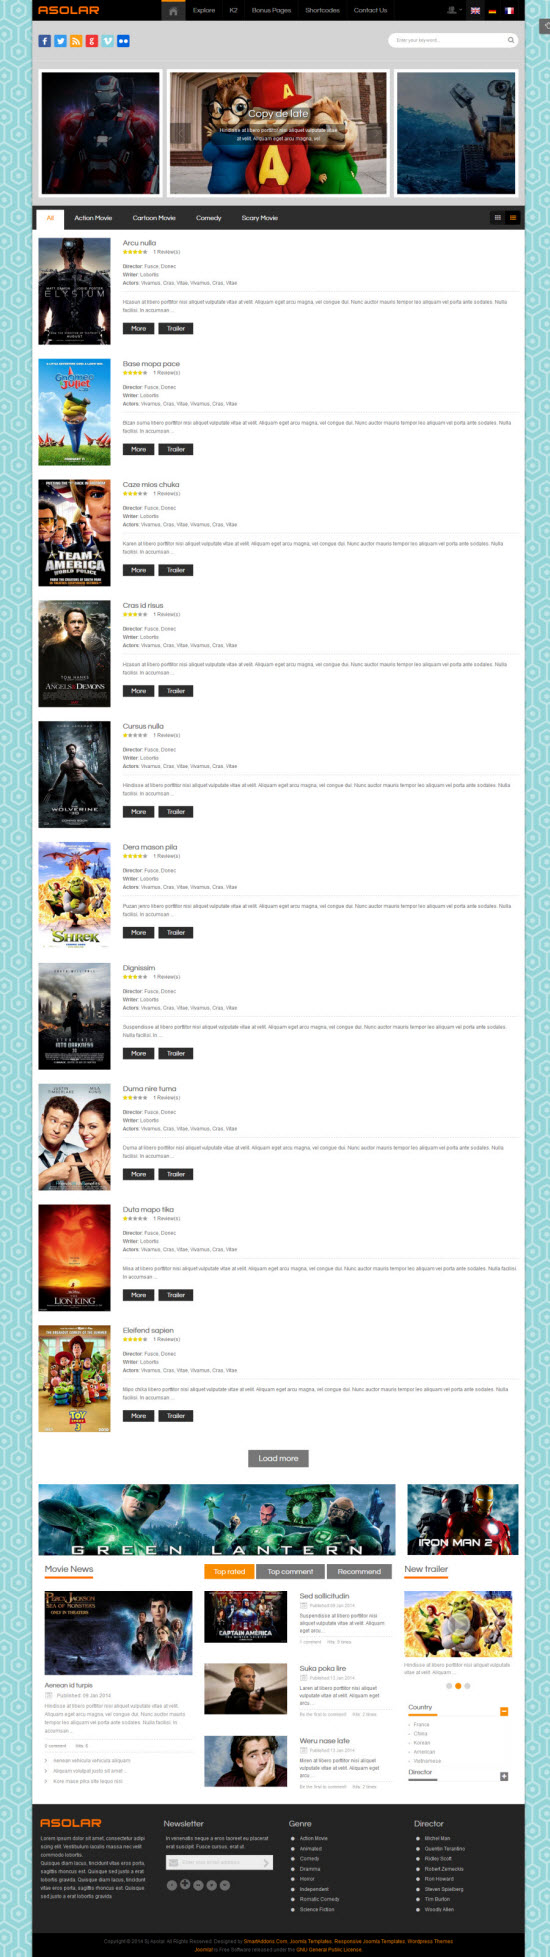 SJ Asolar - Responsive Joomla Movie Template - 02-index2.jpg